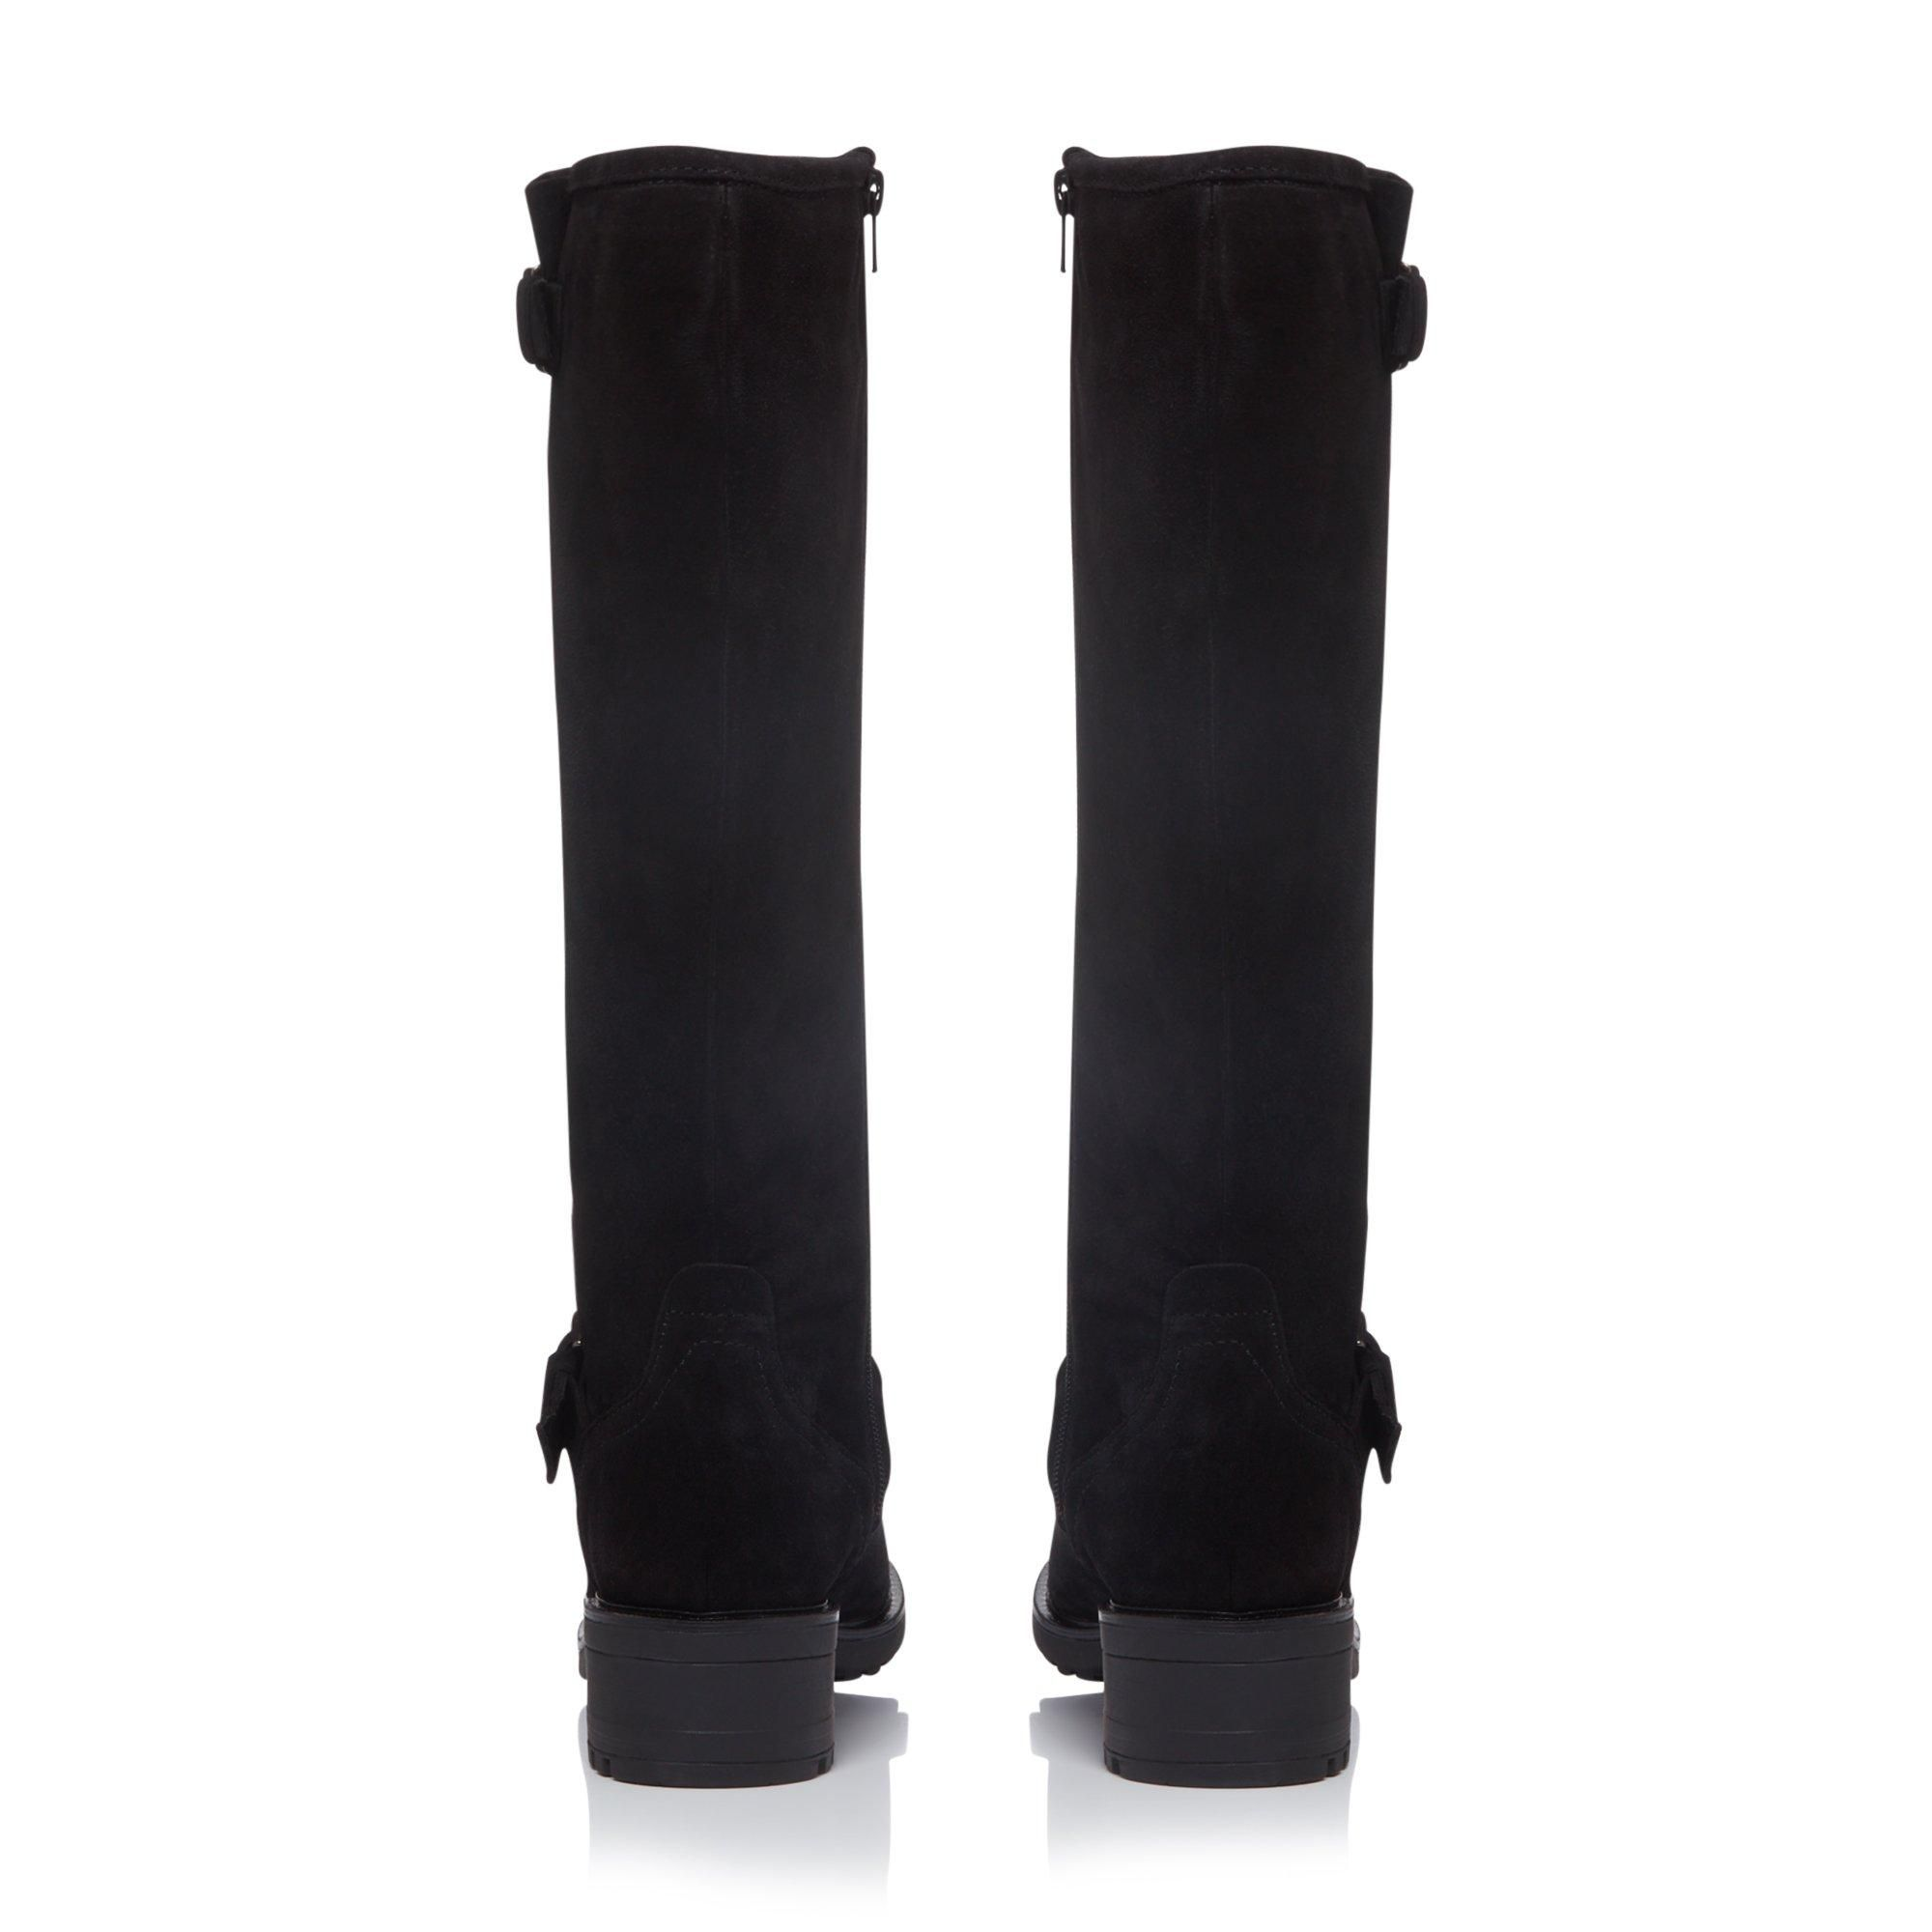 Bertie Ladies TRUST Cleated Knee High Boots